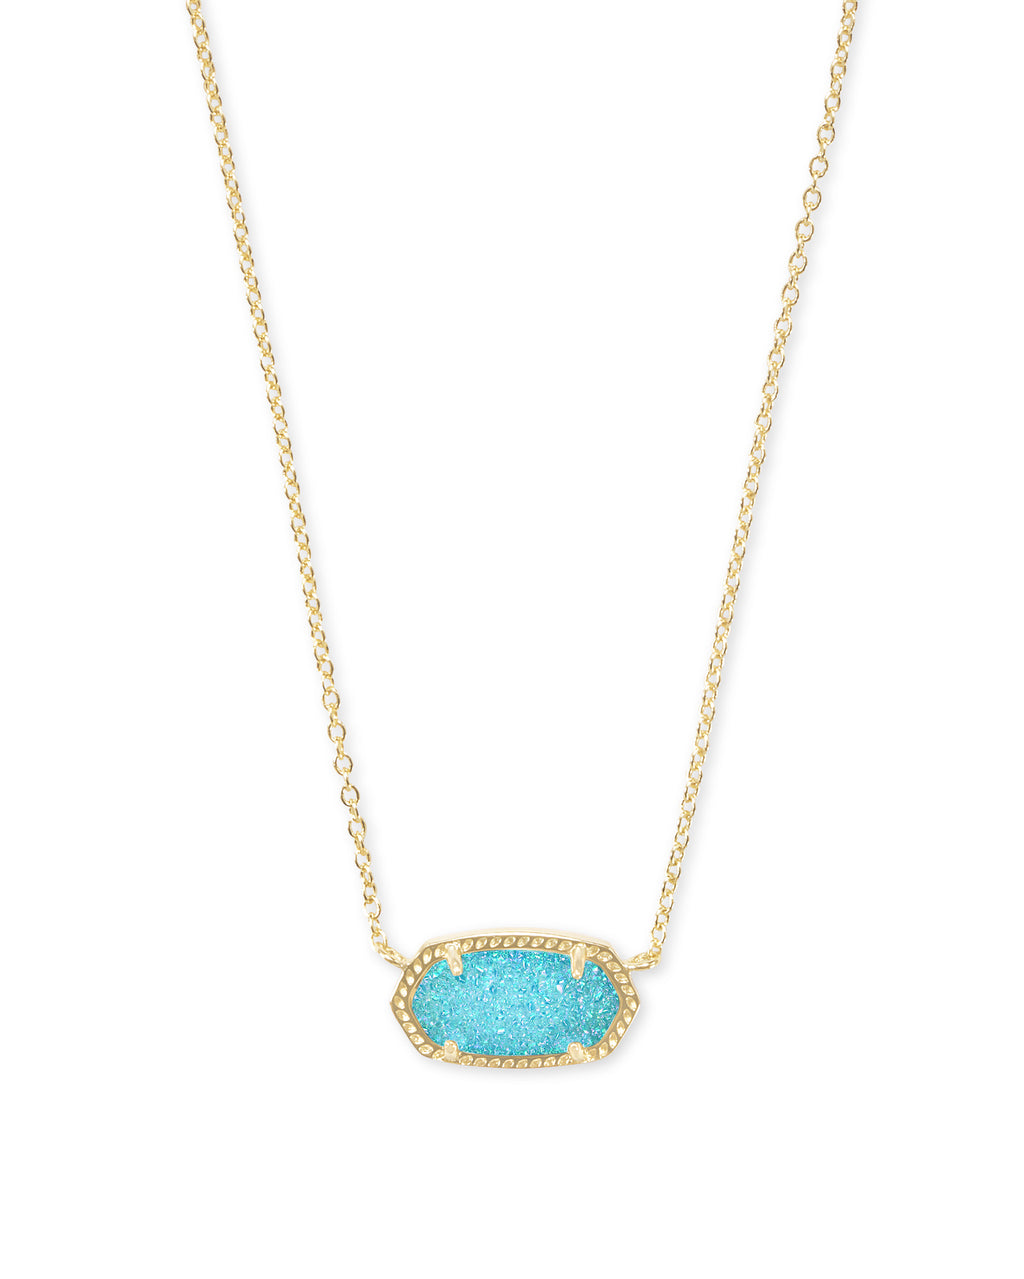 Elisa Gold Pendant Necklace In Bright Aqua Drusy by Kendra Scott